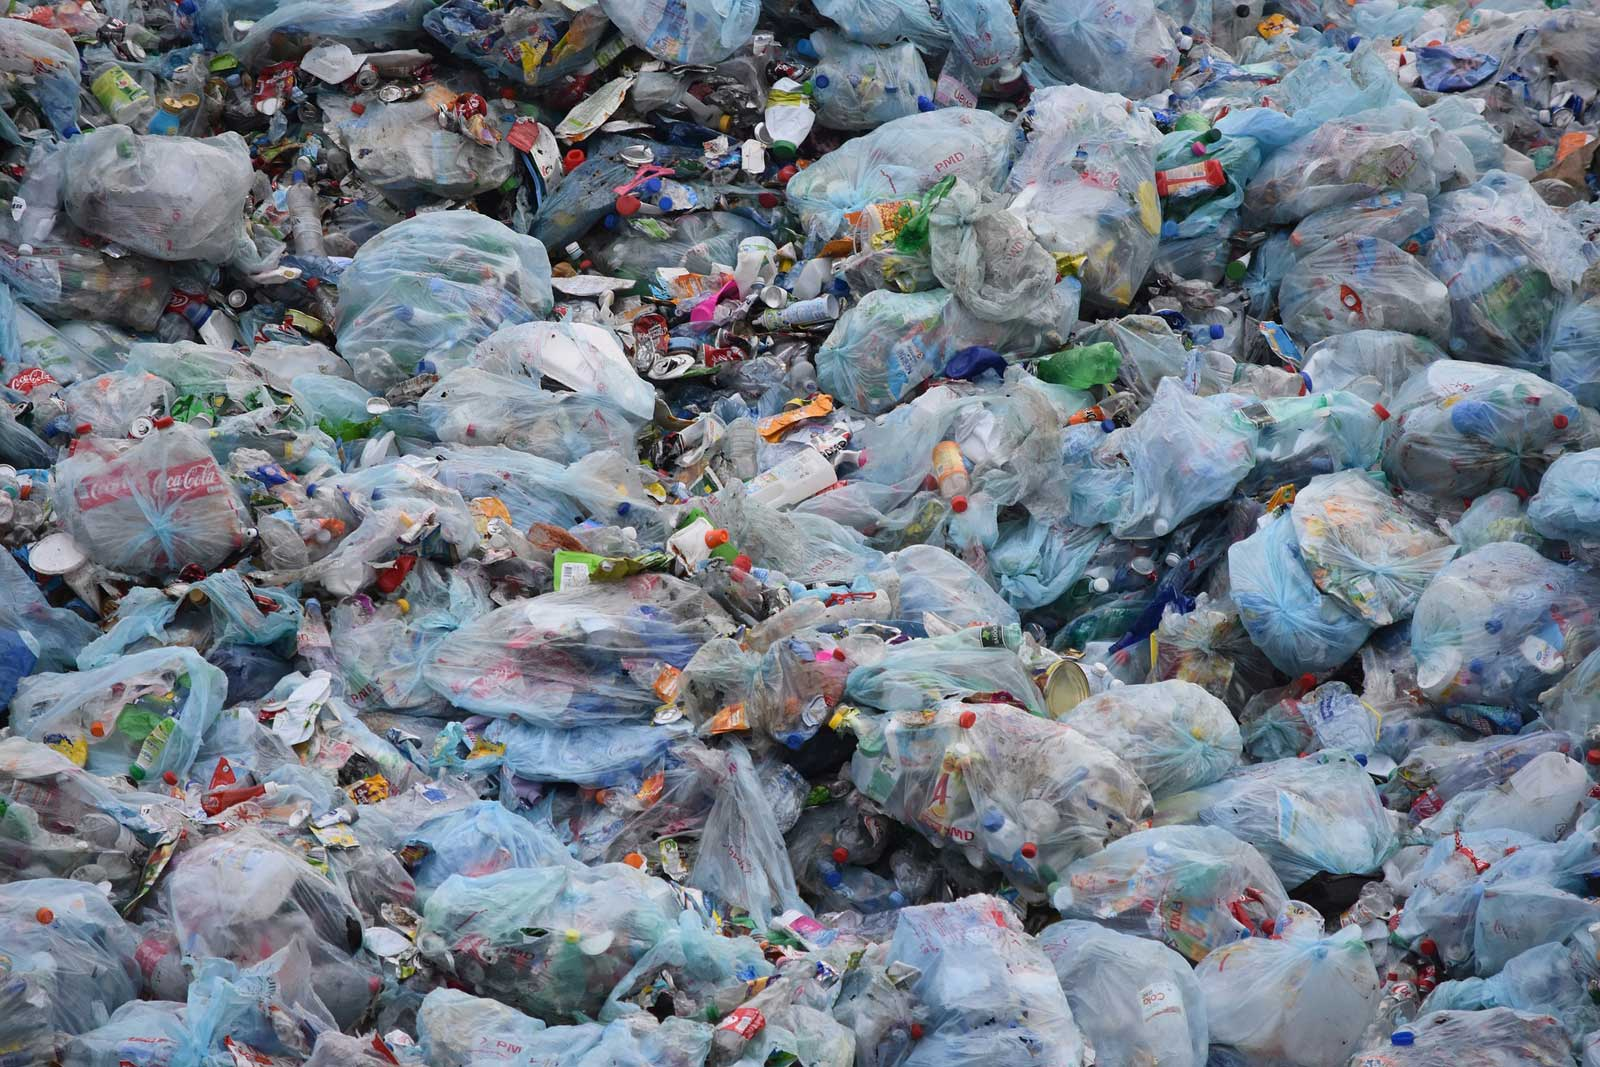 Banning the Use of Plastic Bags, Tanzania Joins Kenya in Banning the Use of Plastic Bags